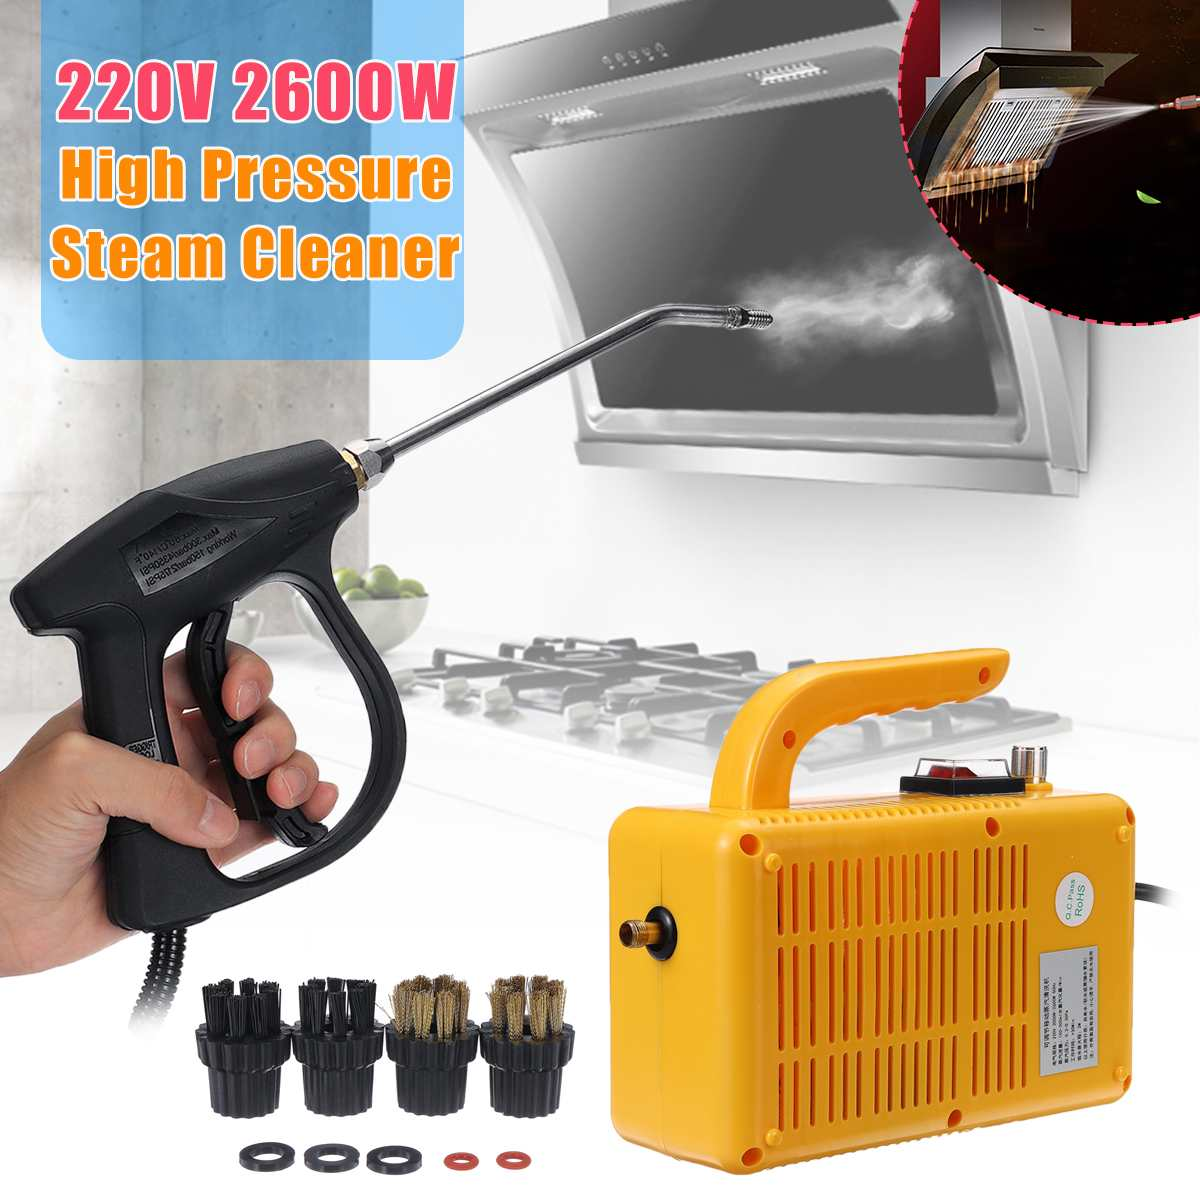 Steam Cleaner 220V 2600W High Pressure Portable Electric Steam Cleaning Machine Household Cleaner Pumping Sterilization